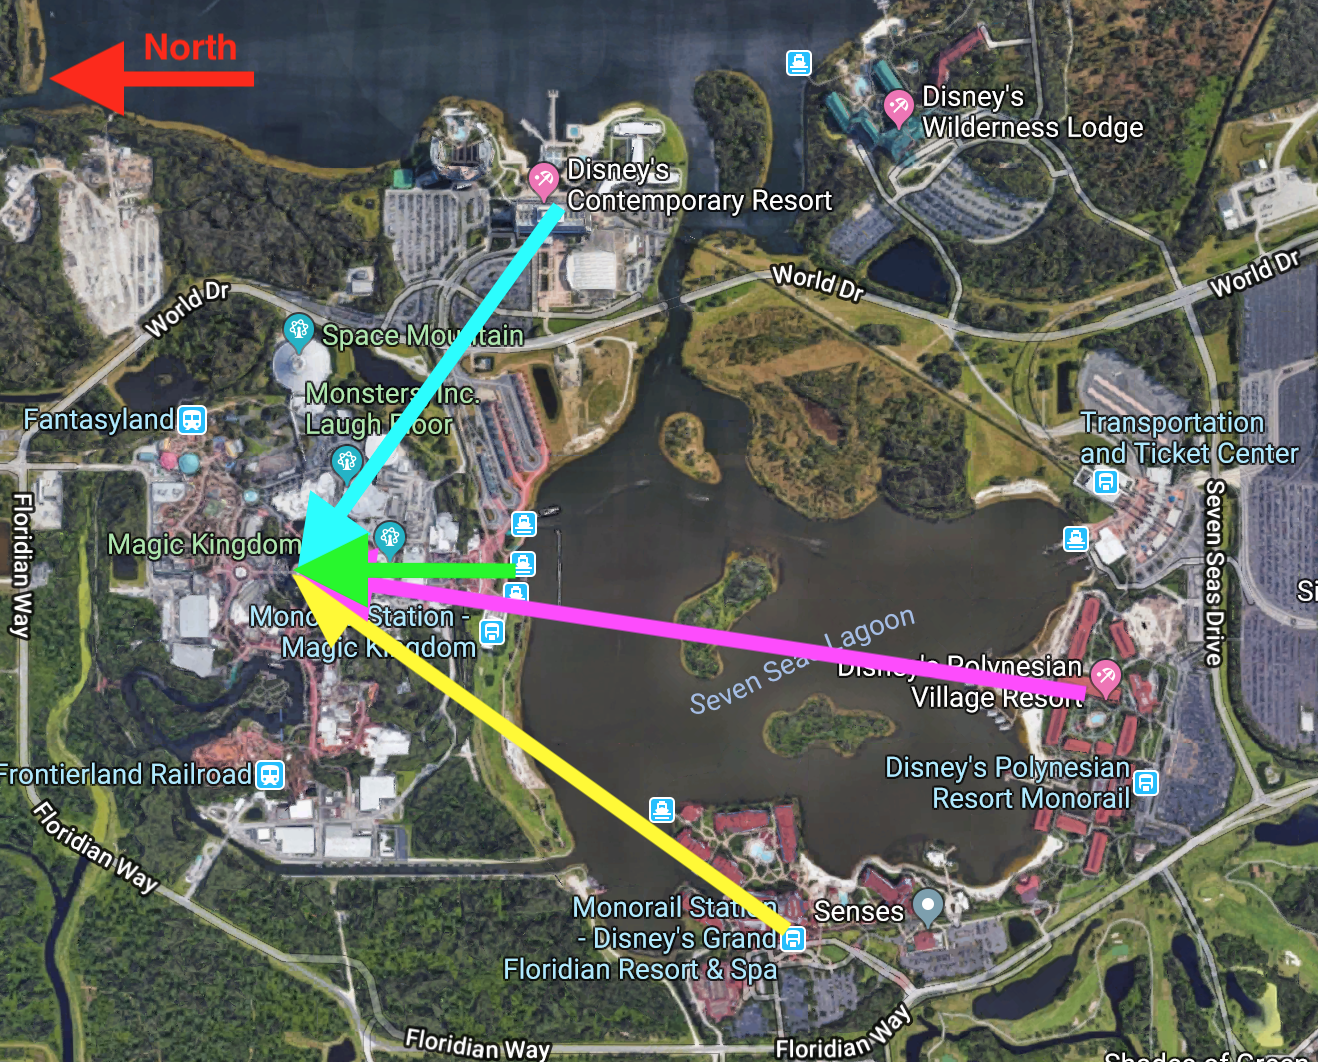 disney world magic kingdom theme park view rooms compared map 2.png